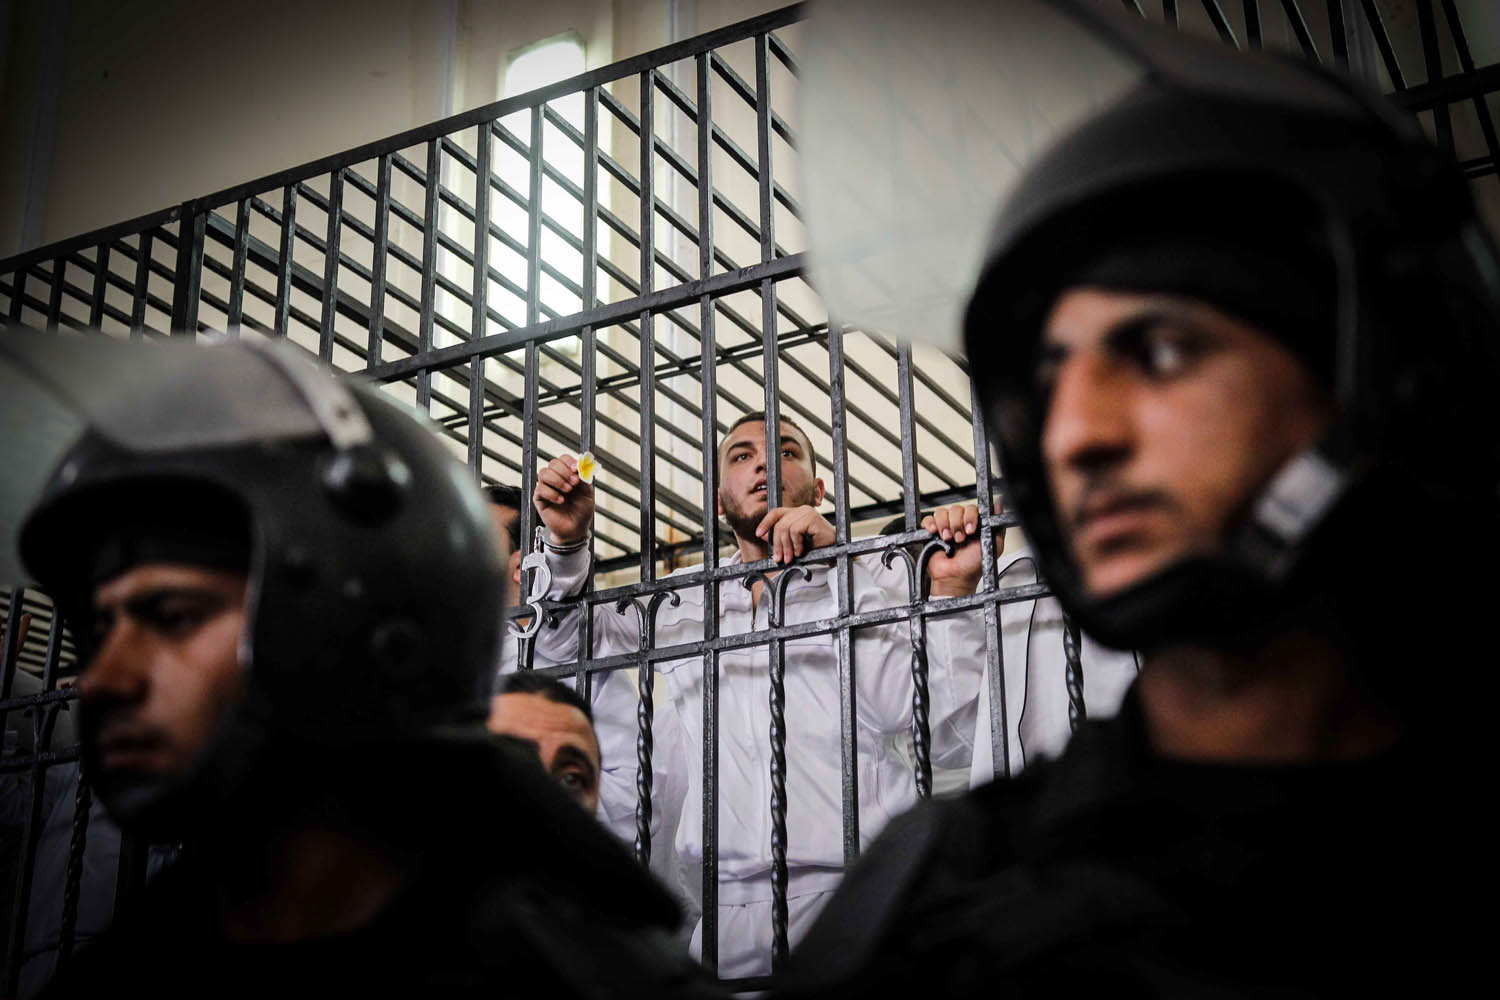 May 19, 2014. Egyptian defendants react in a cage on a court of their trial over violence during 2013 clashes in the Sidi Gaber neighborhood of Alexandria, Egypt.